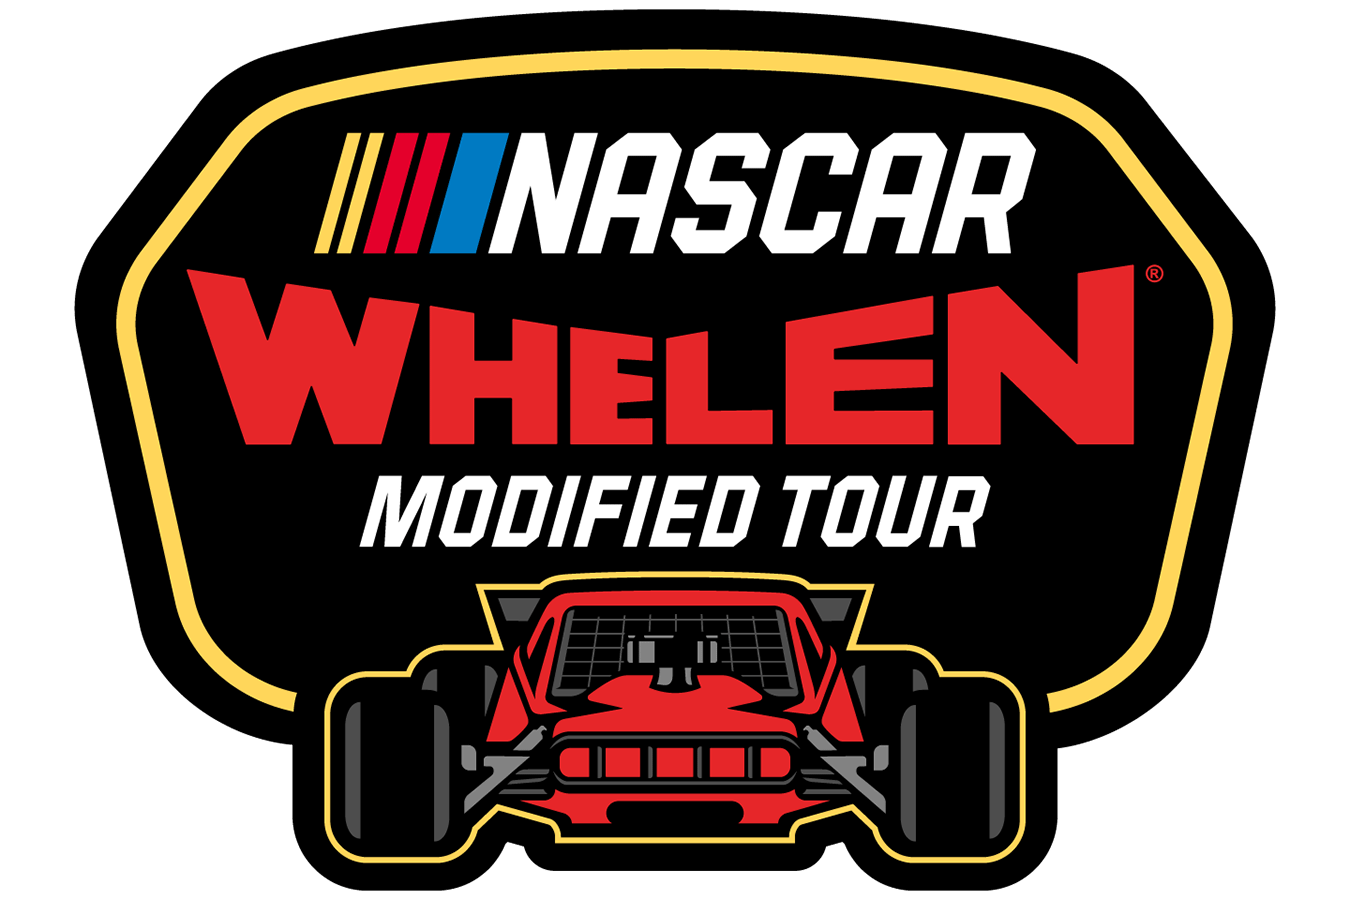 Track clipart tire mark. Whelen modified tour nascar